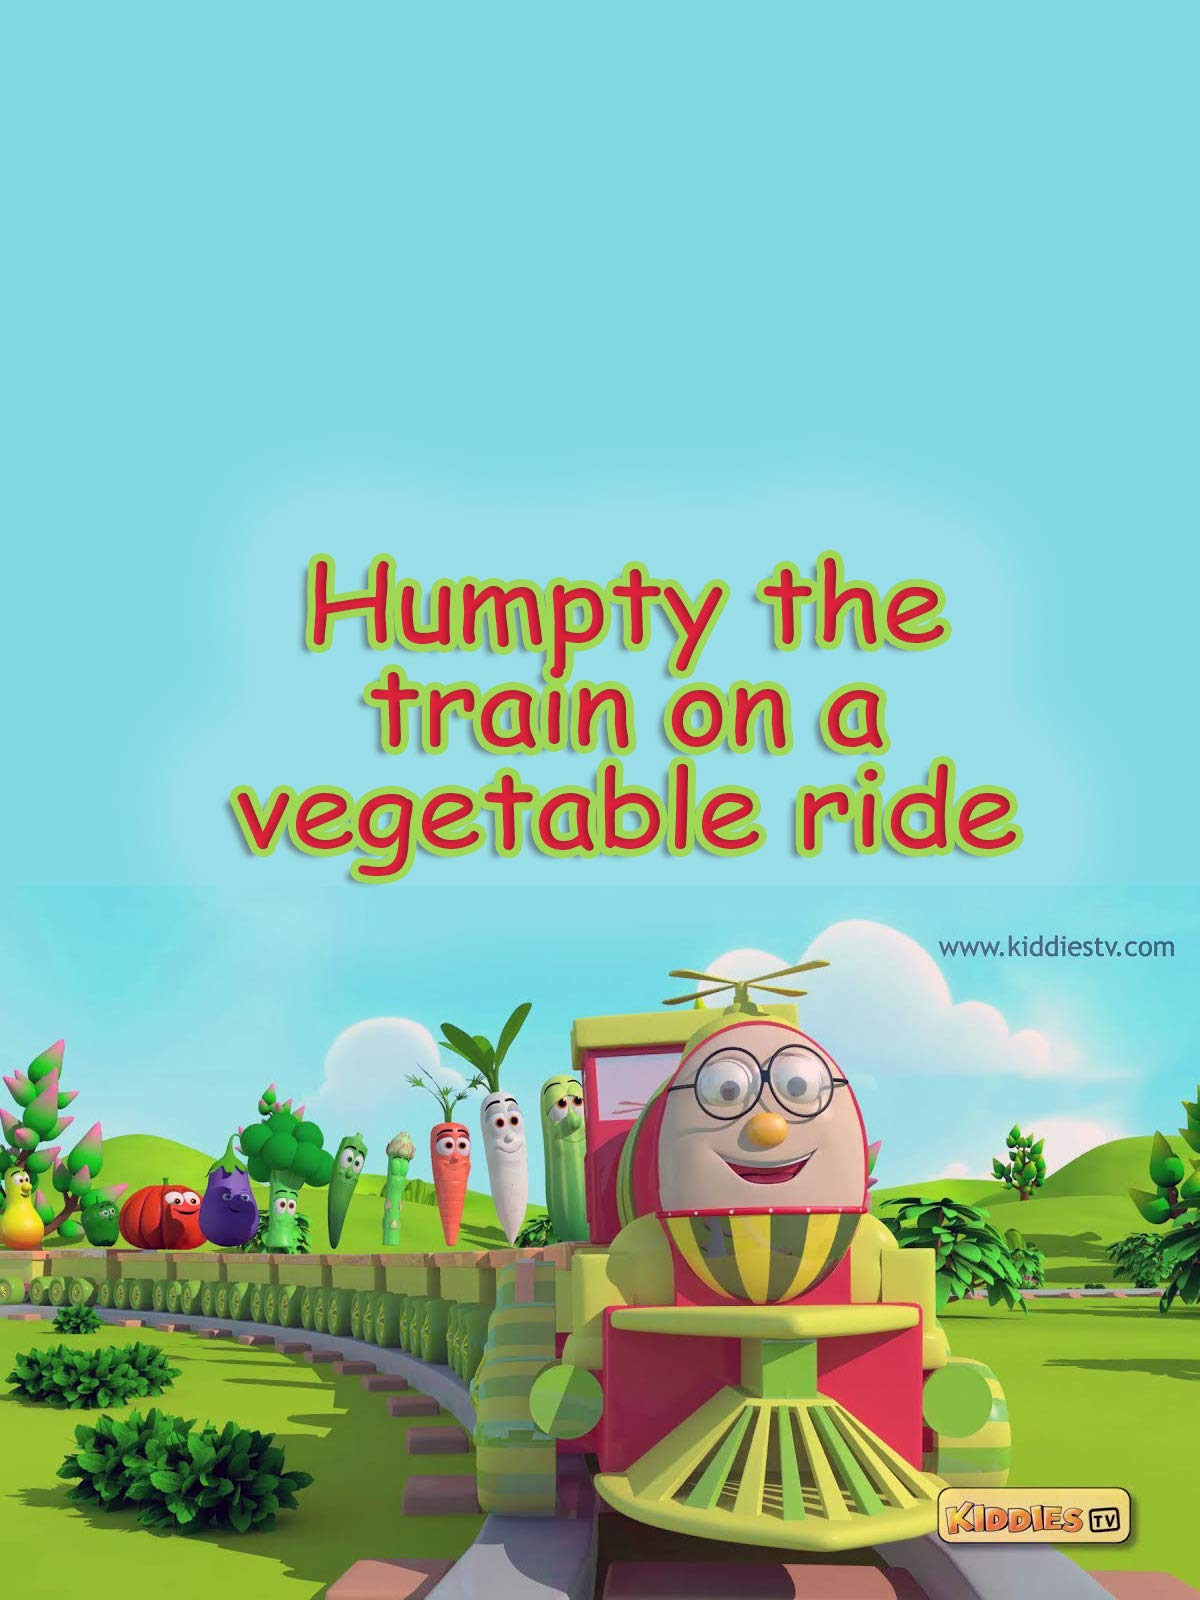 Humpty The Train on a Vegetable Ride